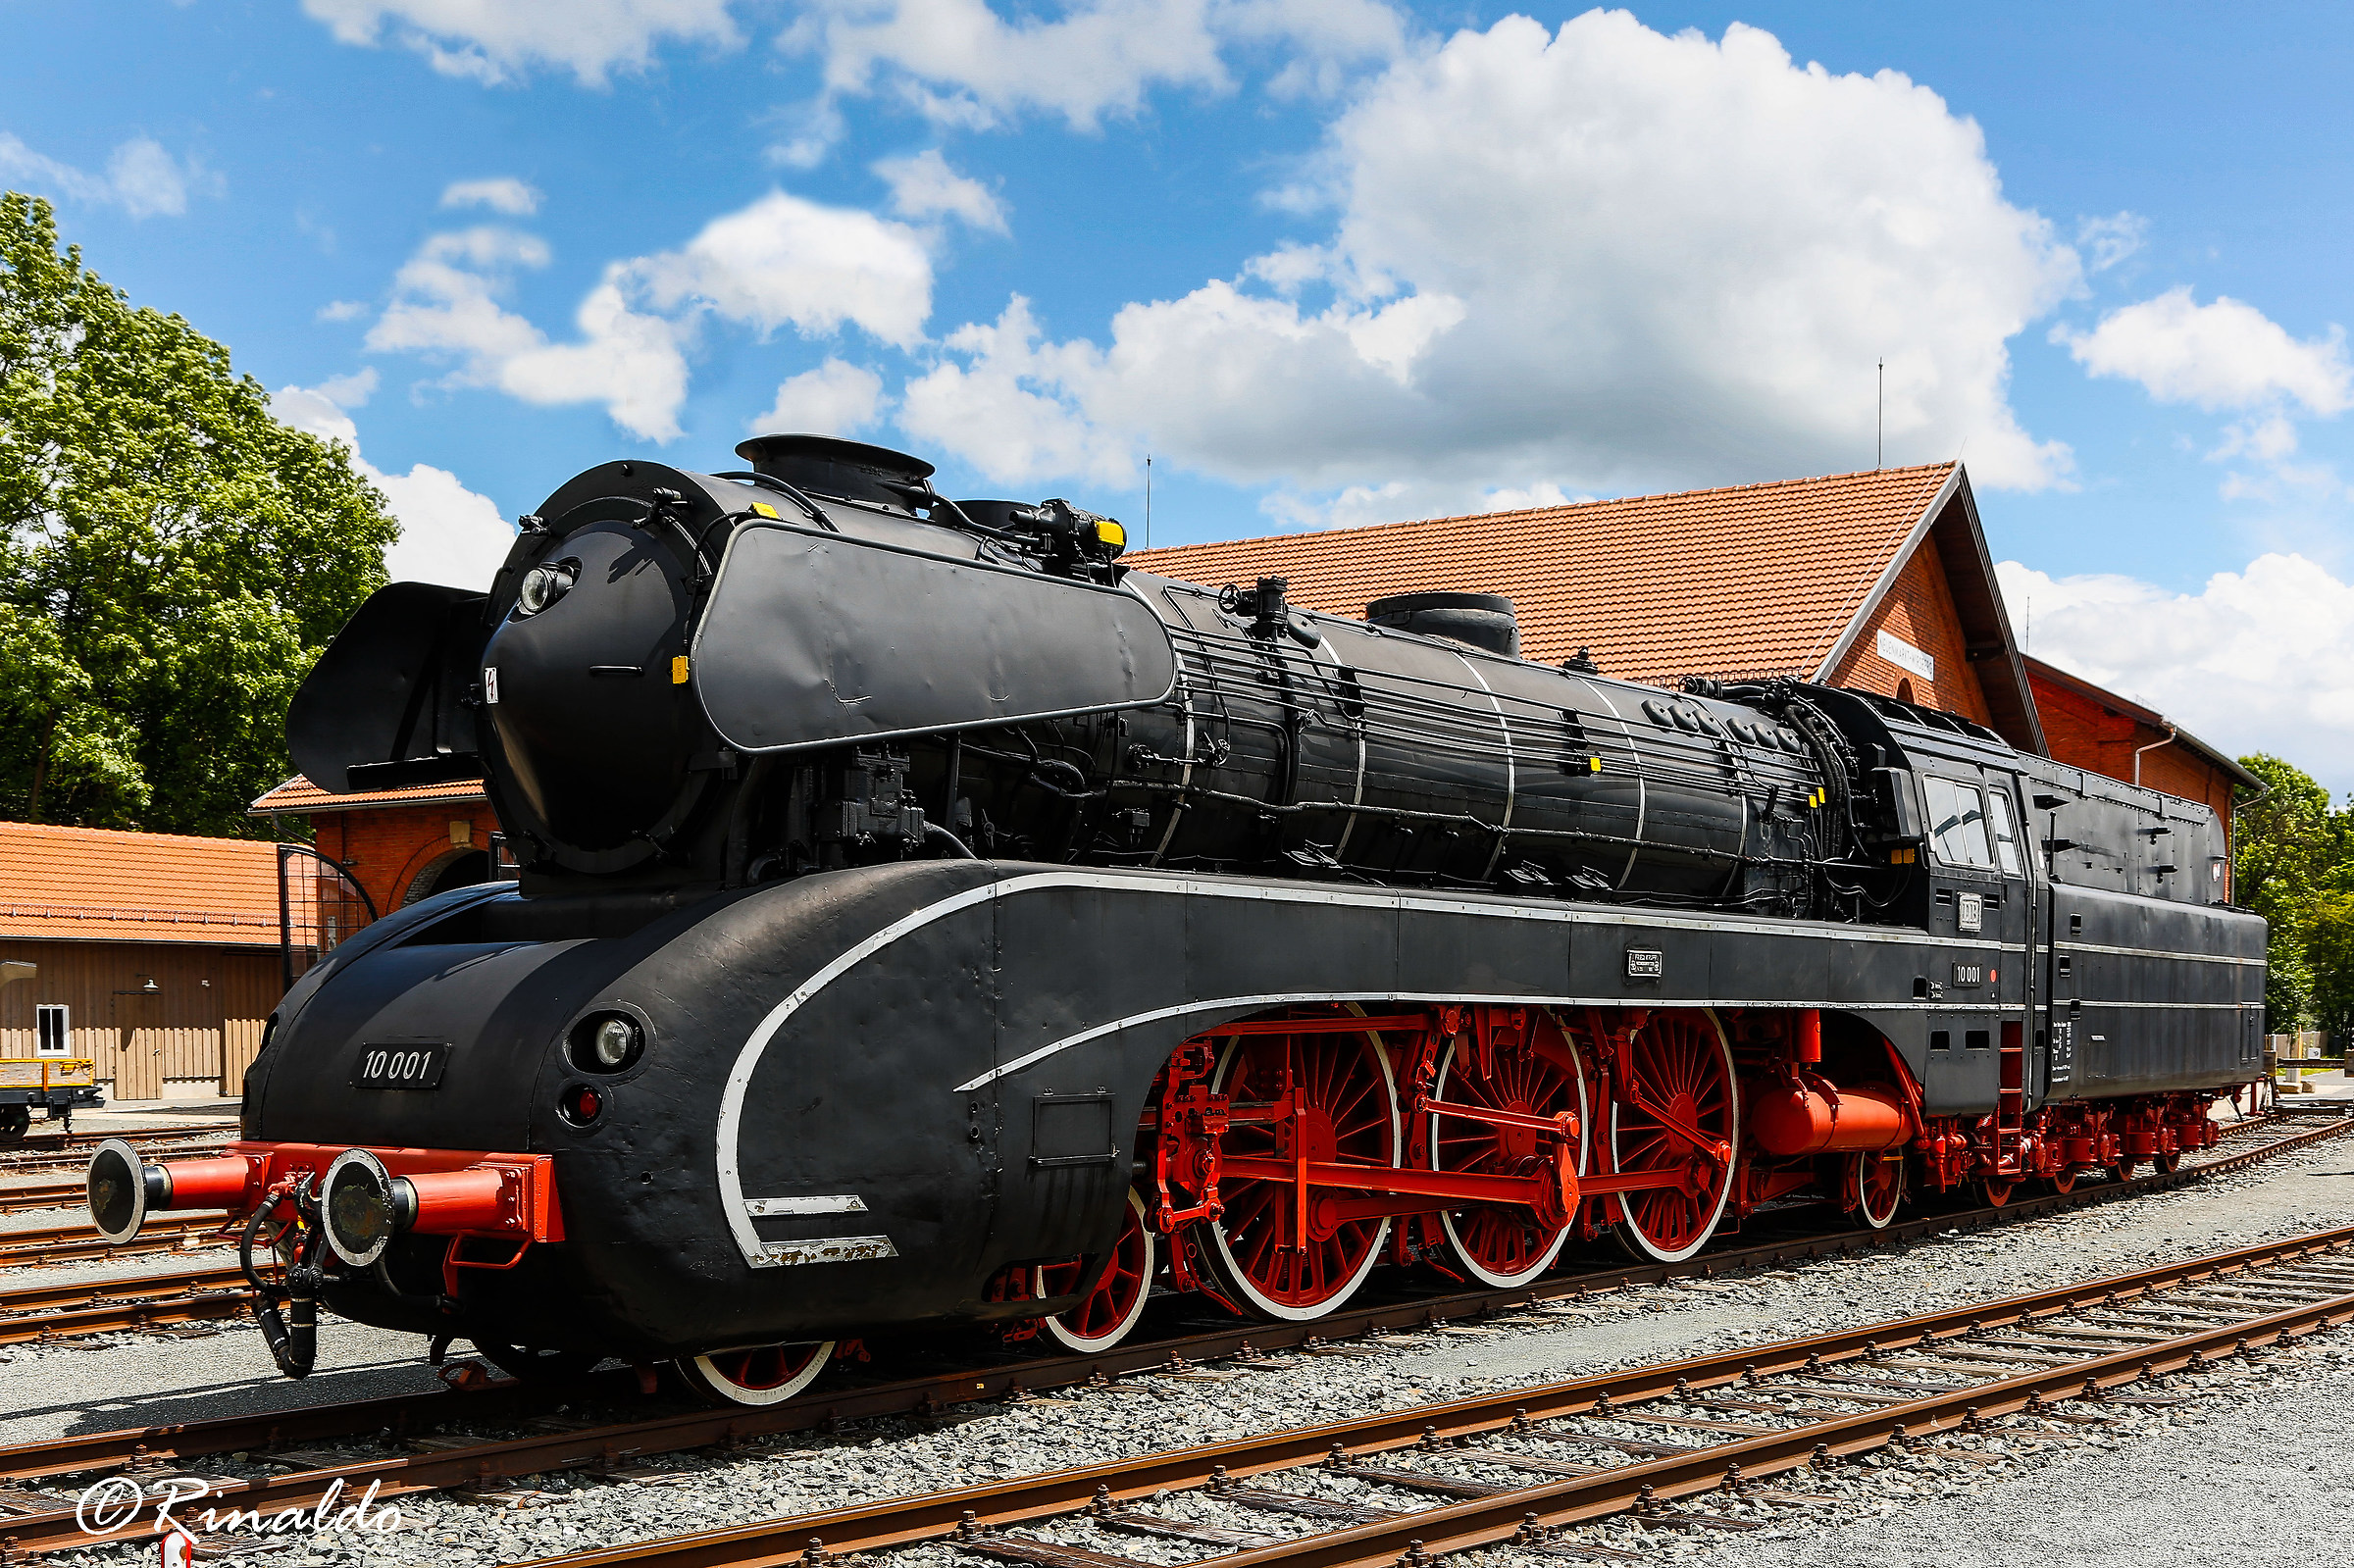 Remember the steam locomotives? Here is the db10001...